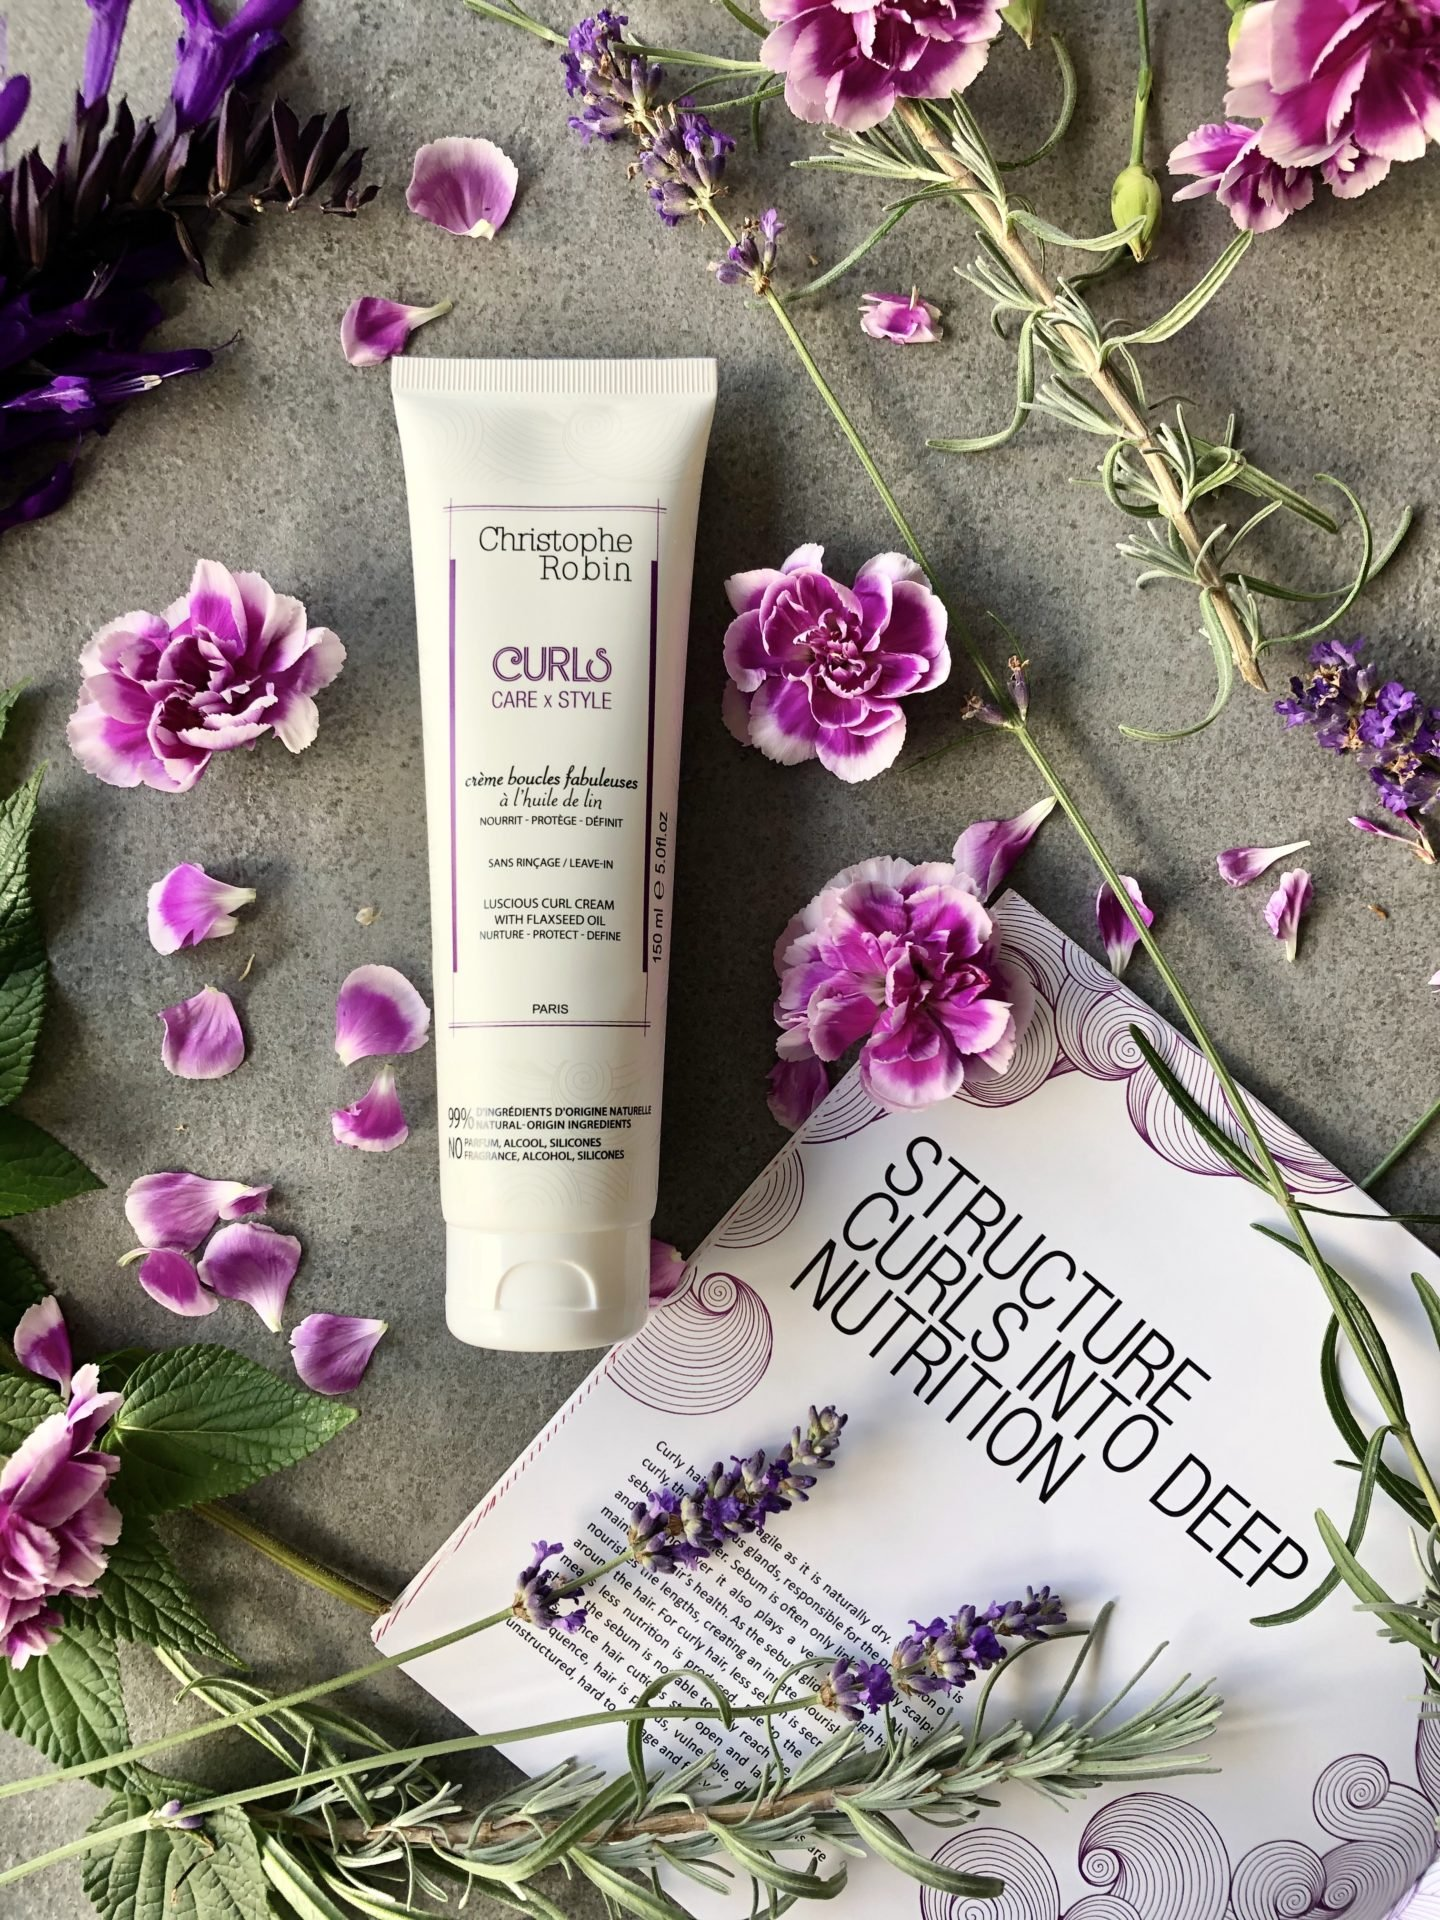 Christophe Robin Curl Cream products are curly girl method approved. Christophe Robin is high end hair care from concentrated natural active ingredients